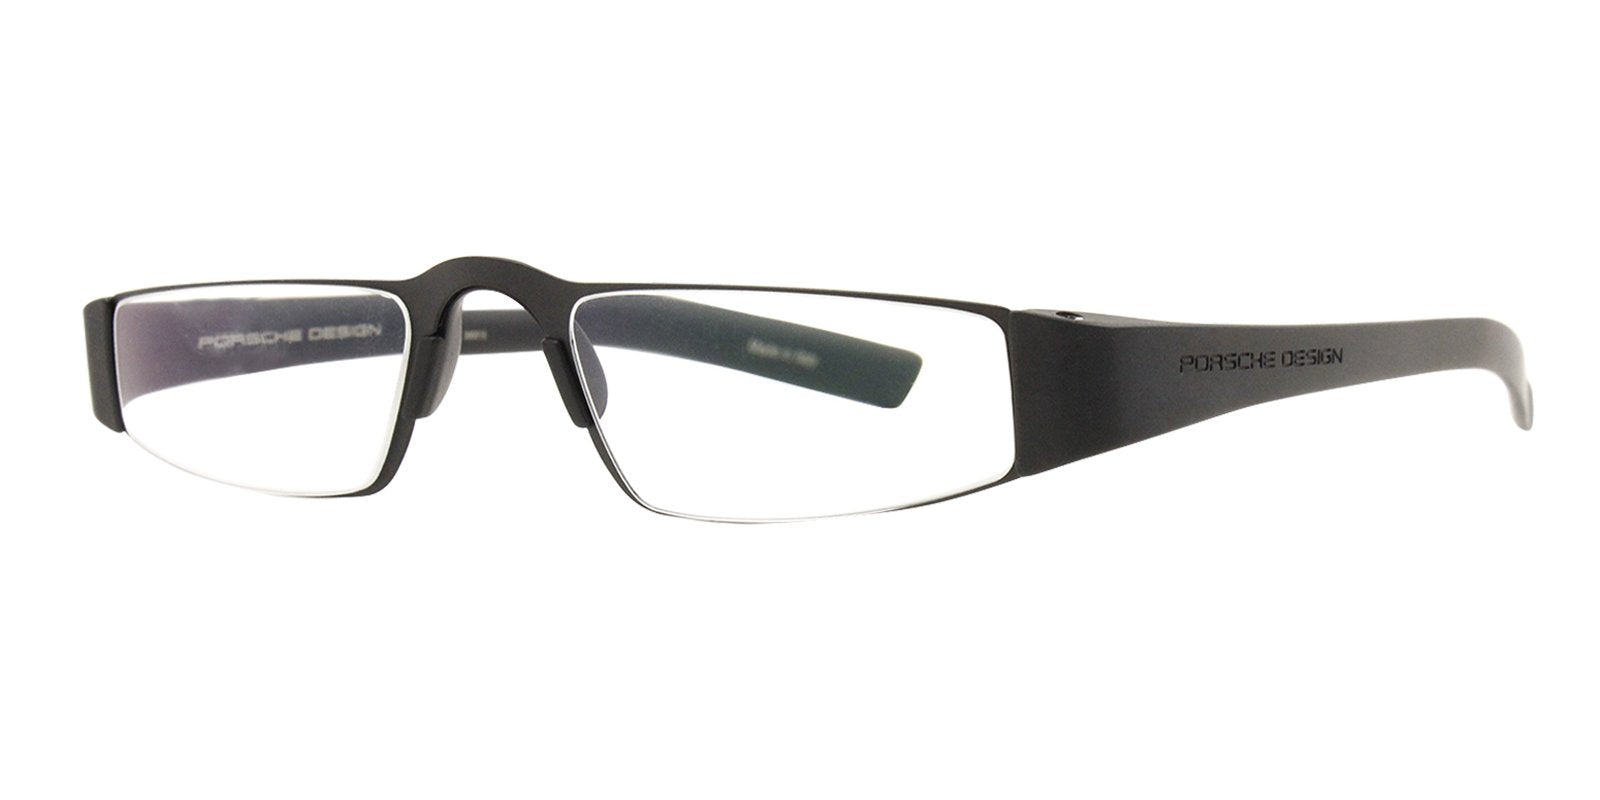 Porsche Design - P8801 +2.00 Black Readers Unisex Readers - 48mm-Readers-Designer Eyes